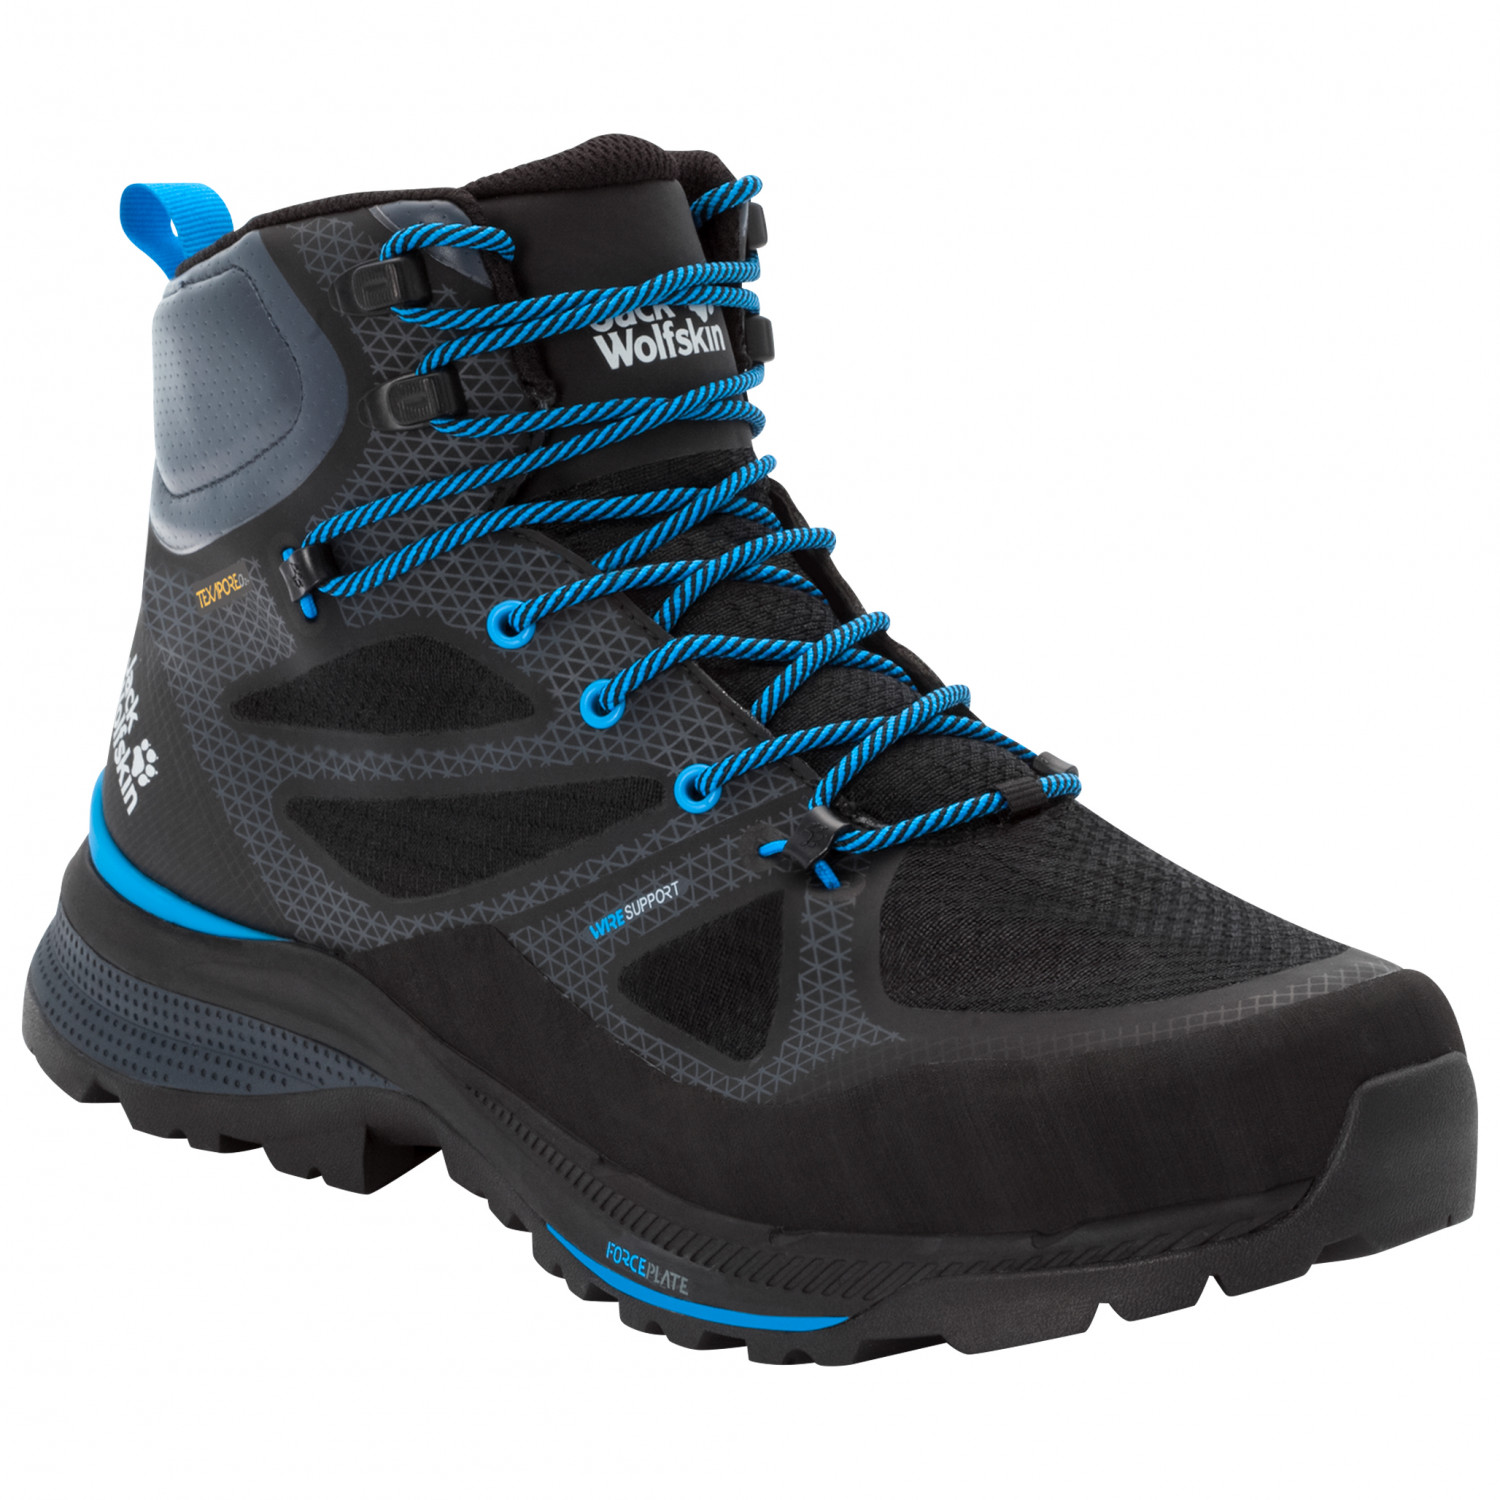 Jack Wolfskin Force Striker Texapore Mid Wanderschuhe Black Blue | 7,5 (UK)